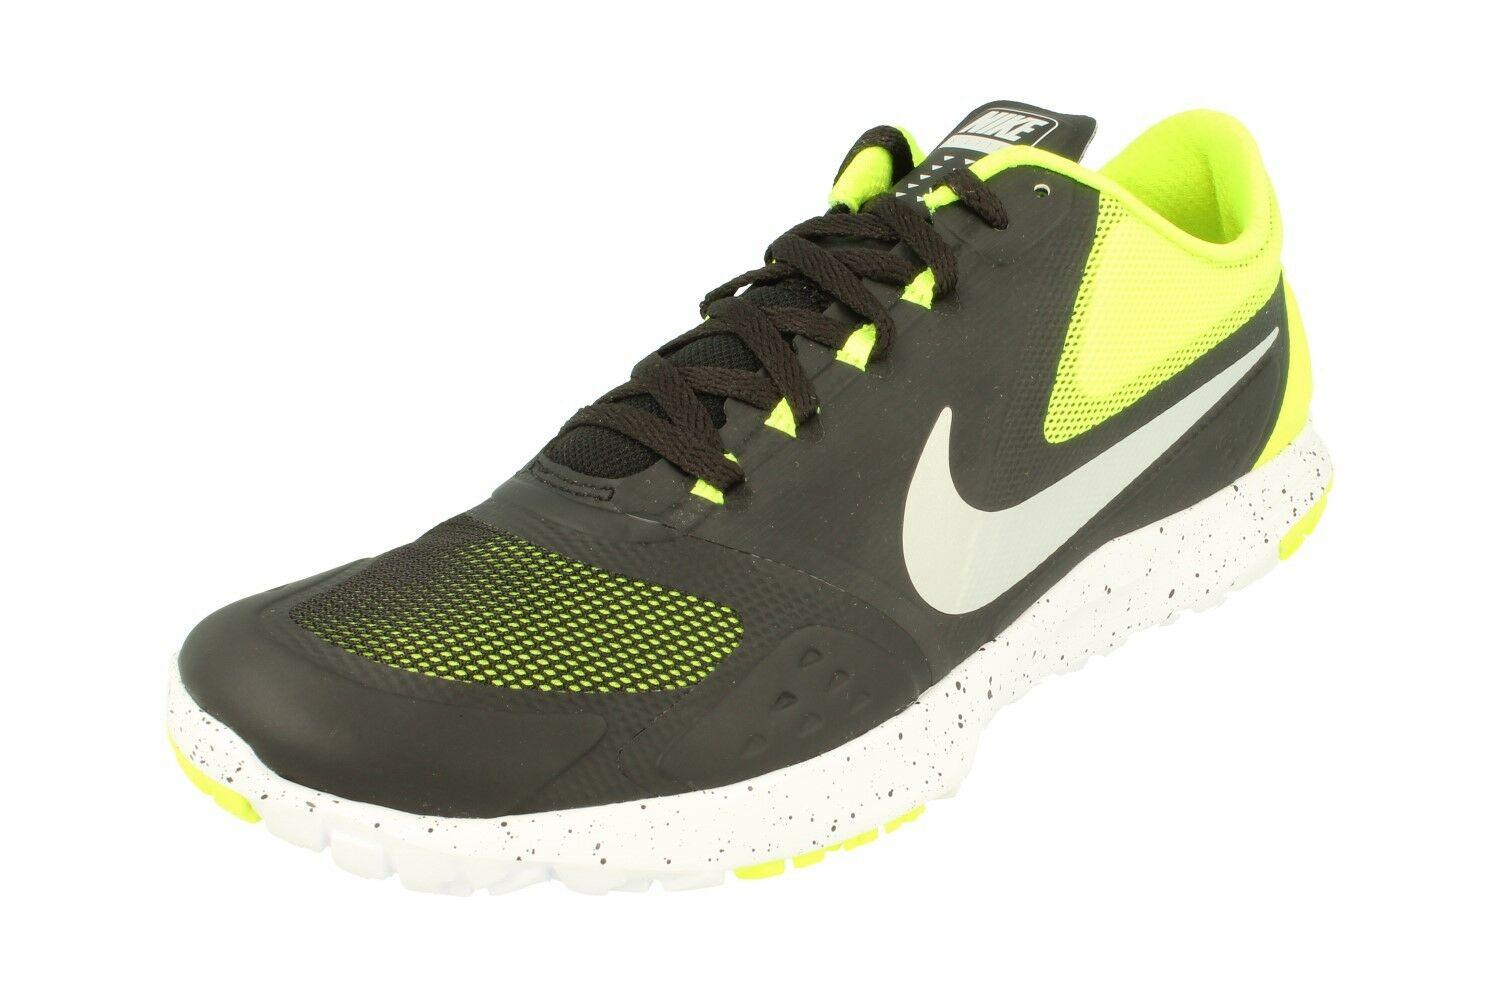 Nike Fs Lite Trainer Ii Mens Running Trainers 683141 Sneakers Shoes  015